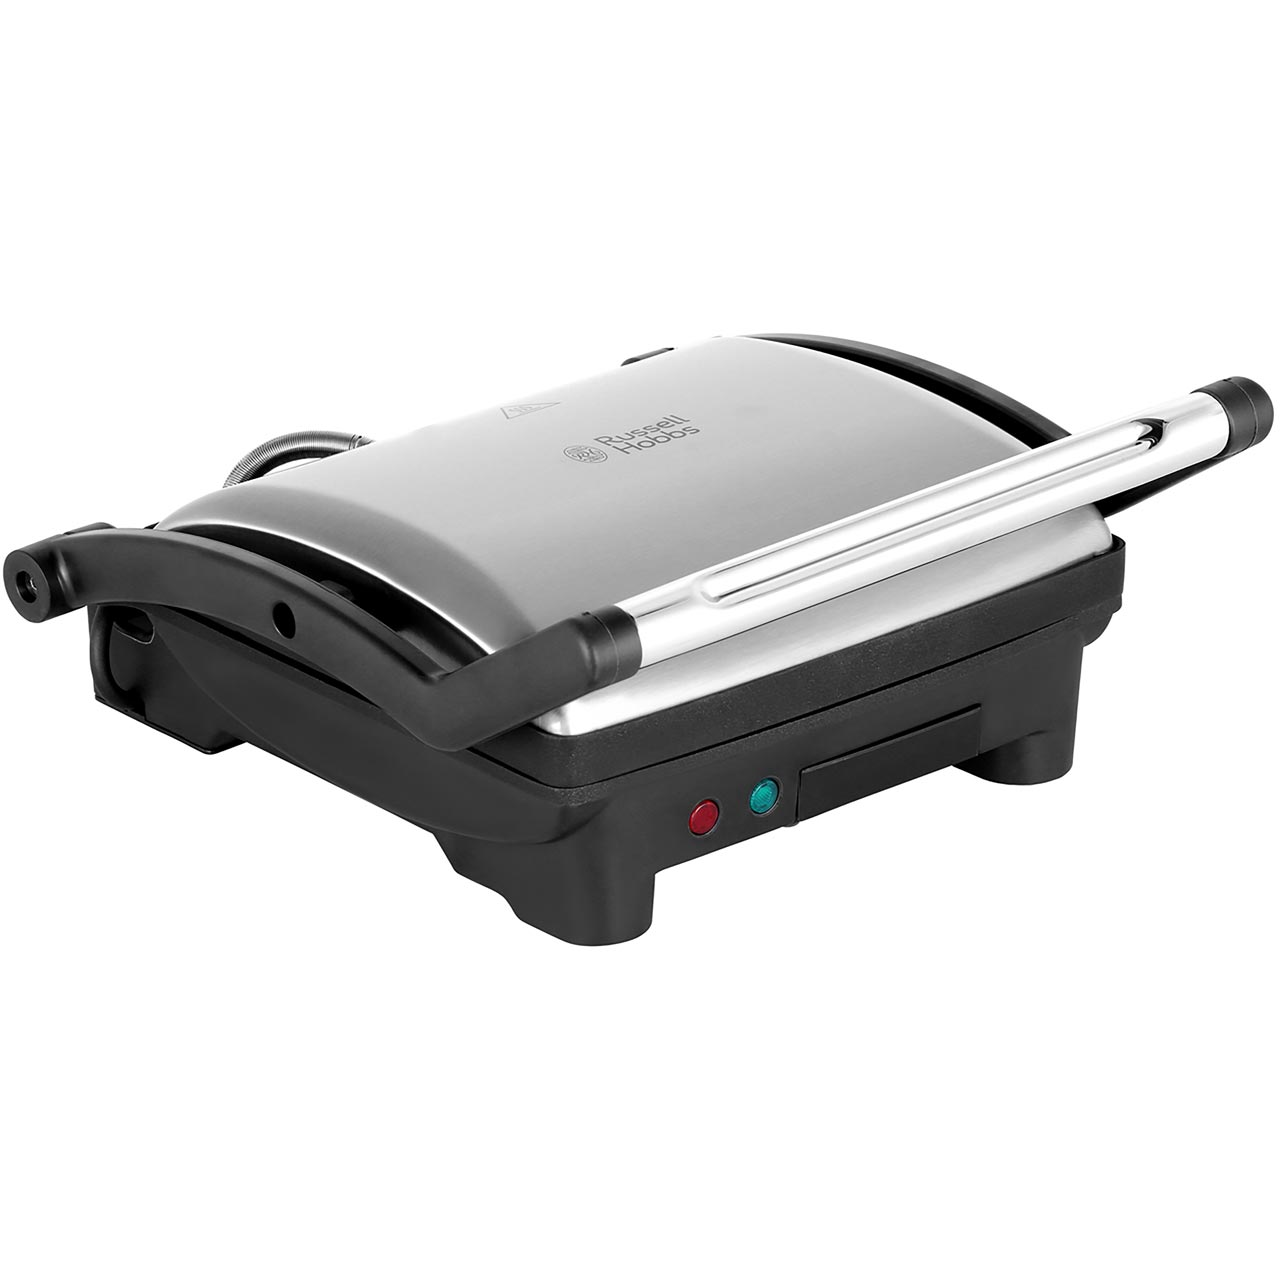 russell hobbs panini grill and griddle 17888 sandwich. Black Bedroom Furniture Sets. Home Design Ideas